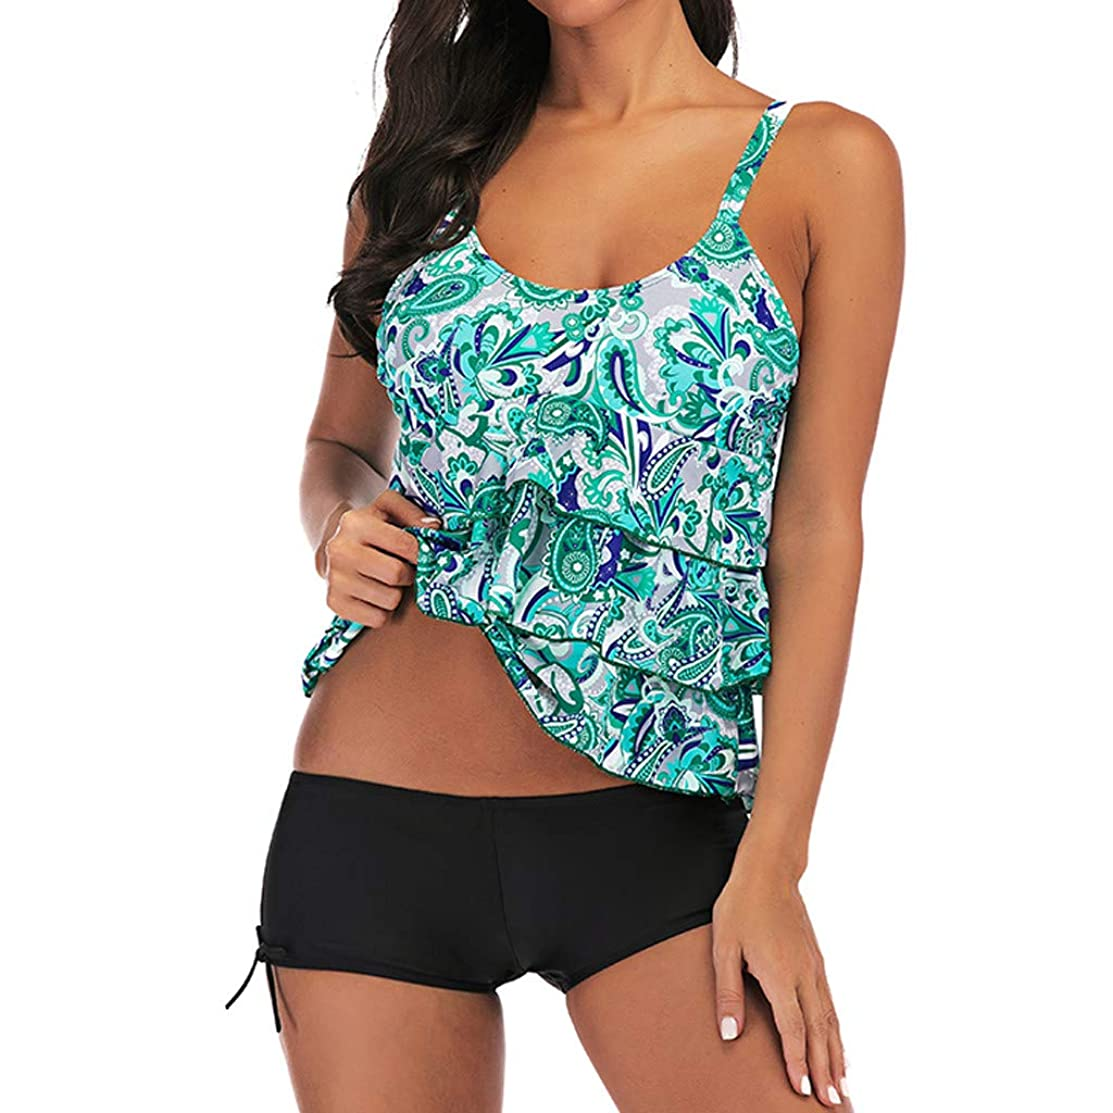 Jchen Women Tummy Control Tankini Sets Ladies Floral Print Splice Ruffle Plus Size Tankini Swim Tops Bathing Suit with Shorts